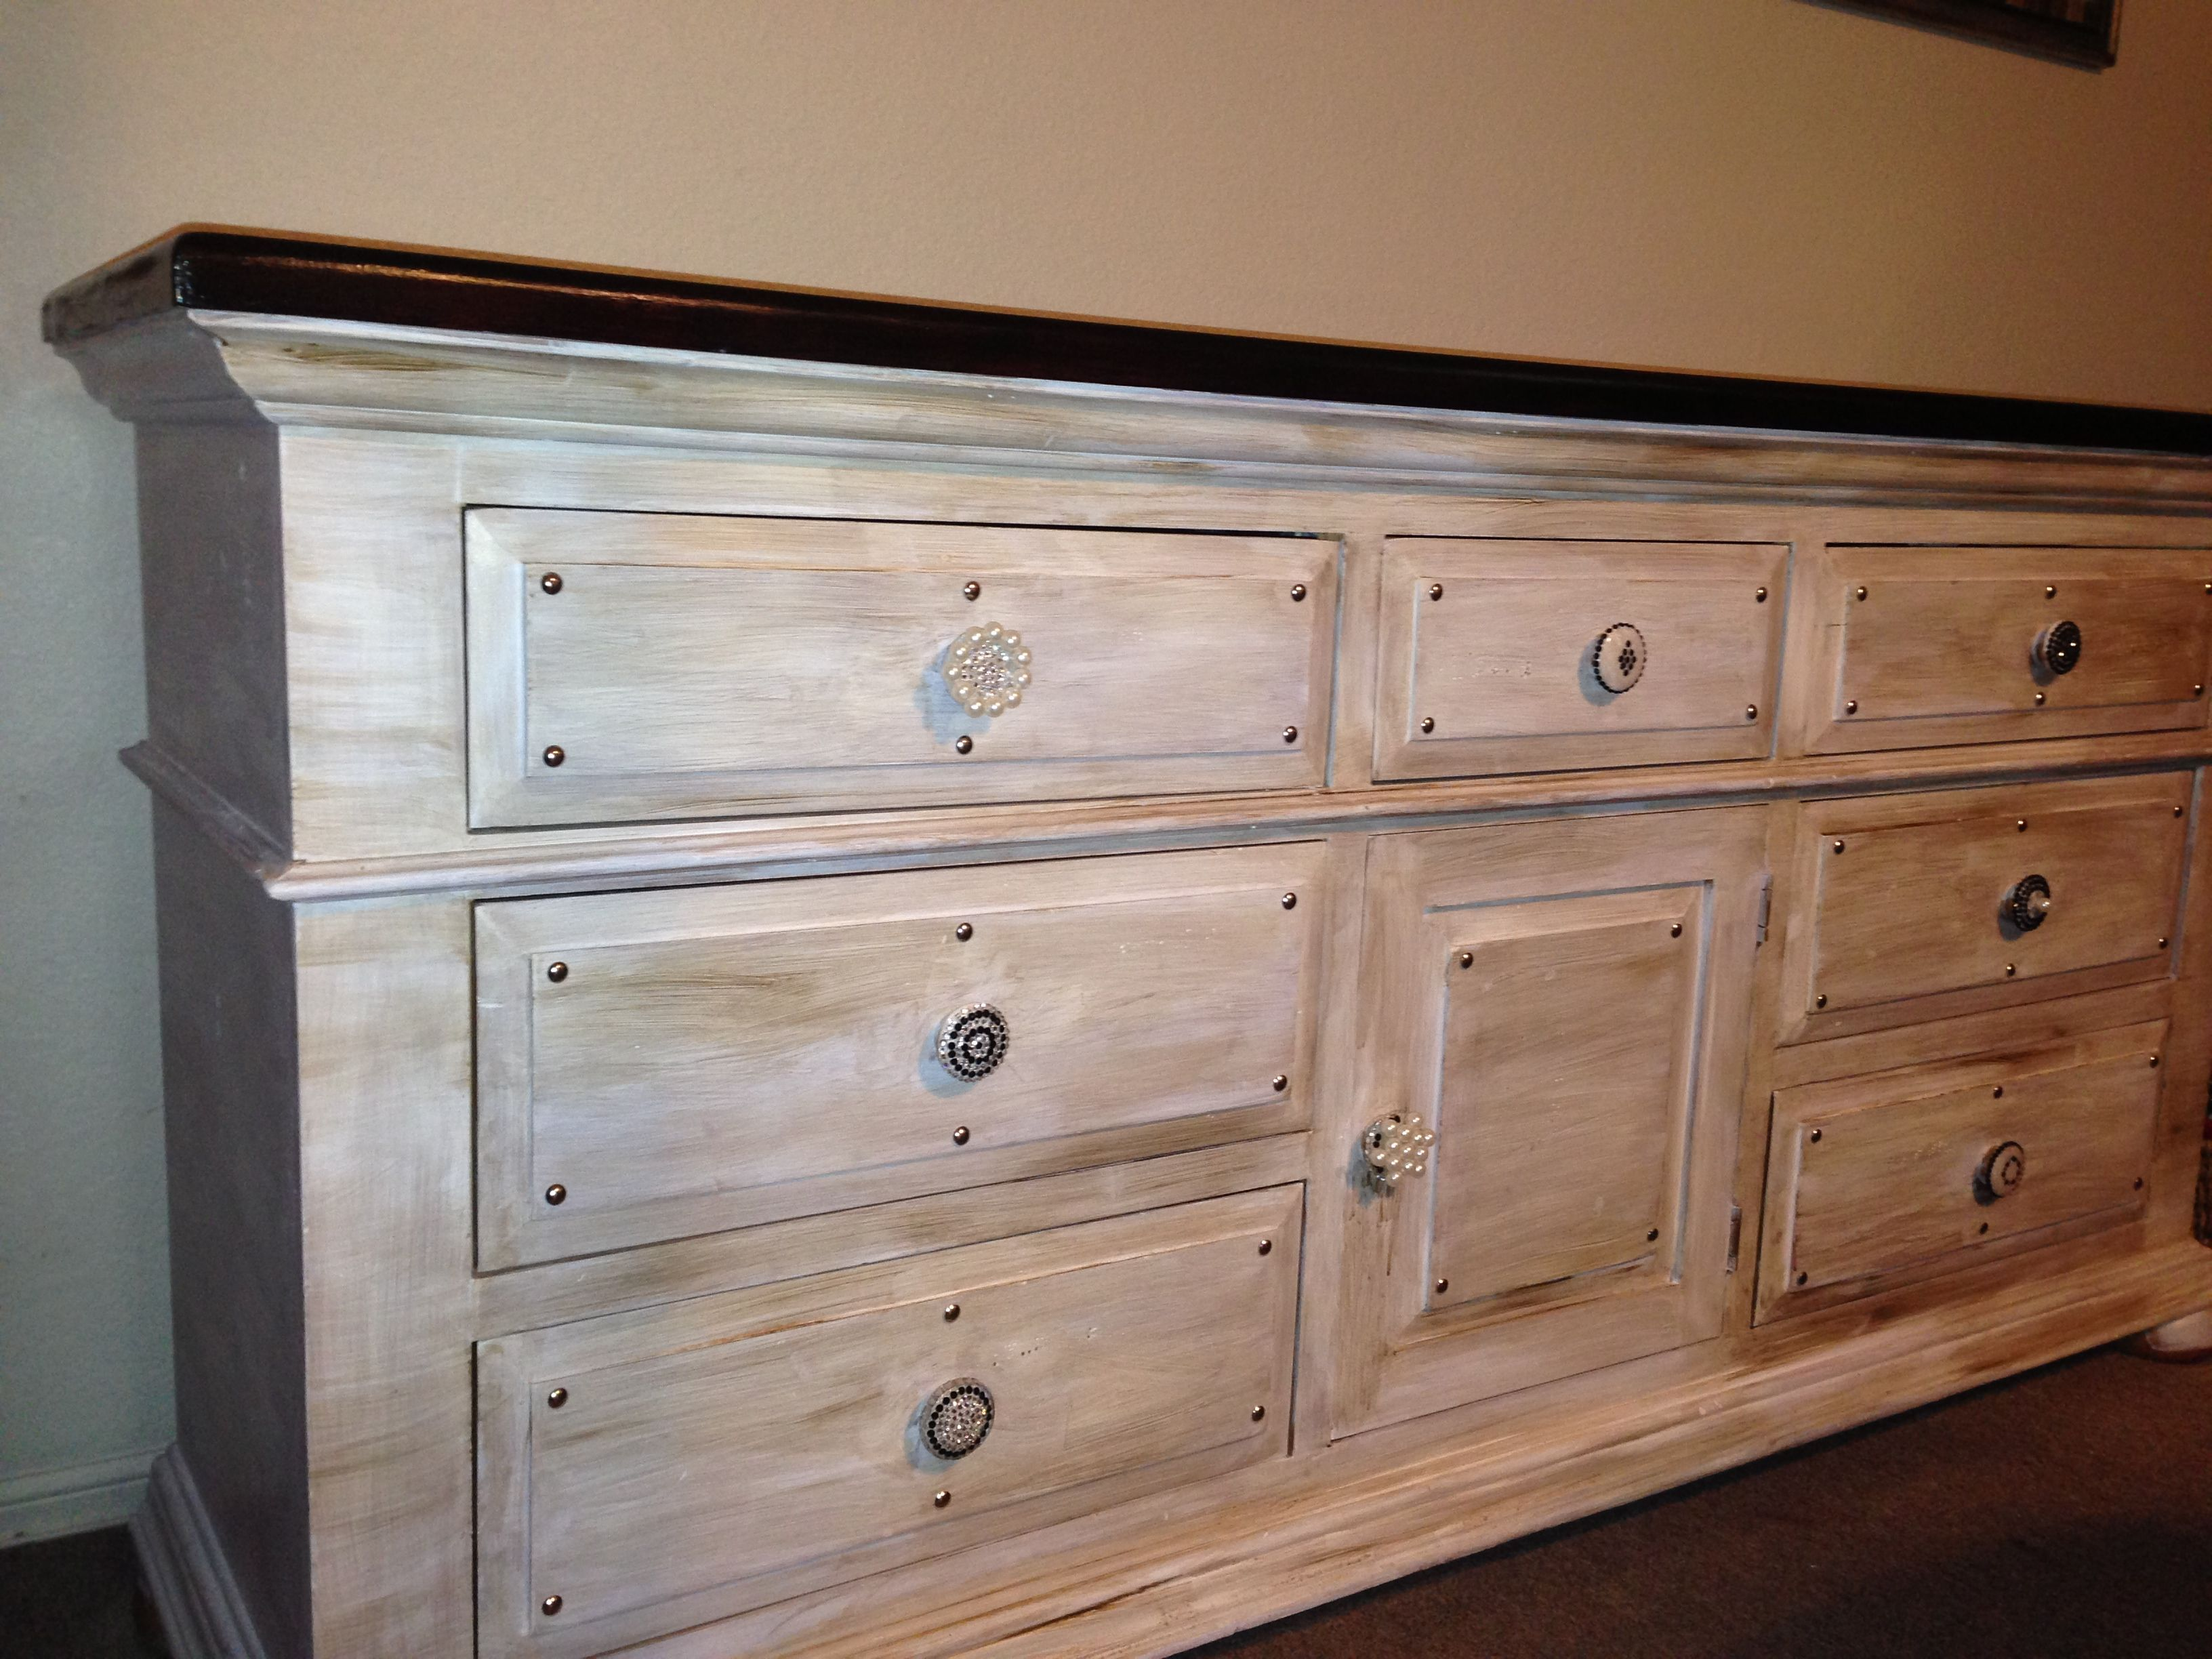 discount barn il sold spasblacksmith by drawer fullxfull handles dresser listing cabinet pulls door